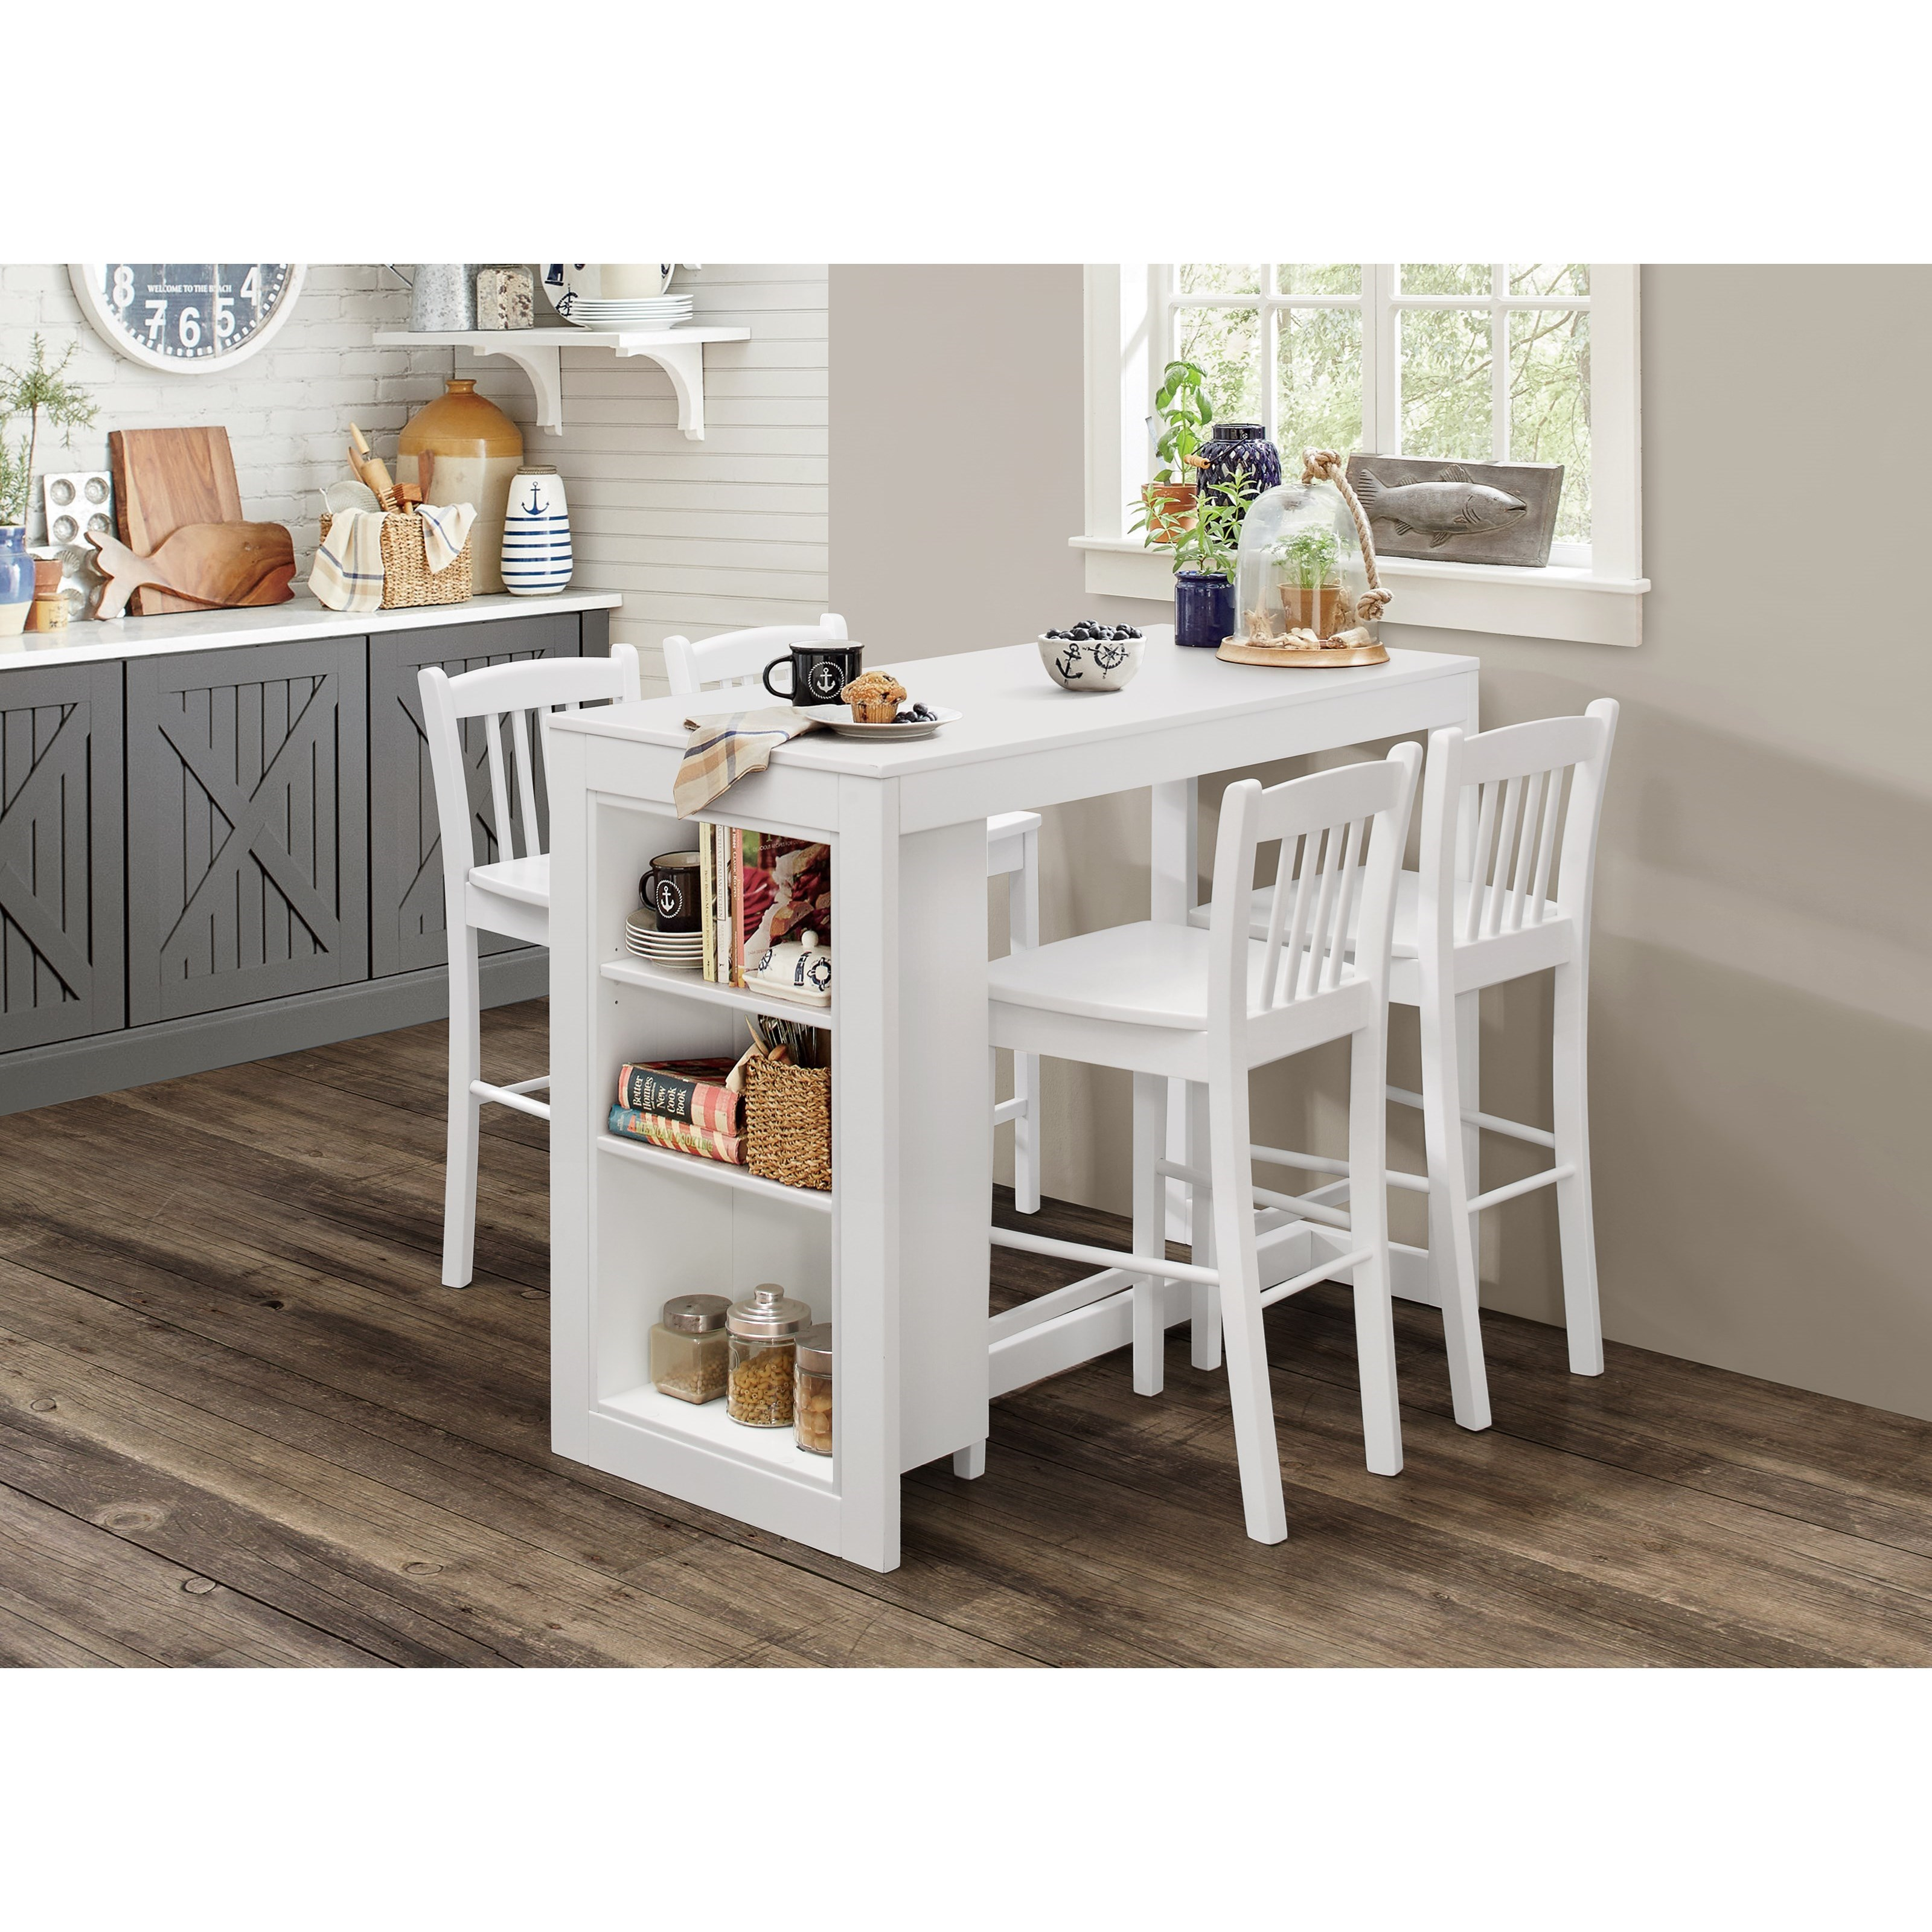 Jofran Tribeca Counter Height Table With 4 Chairs Value